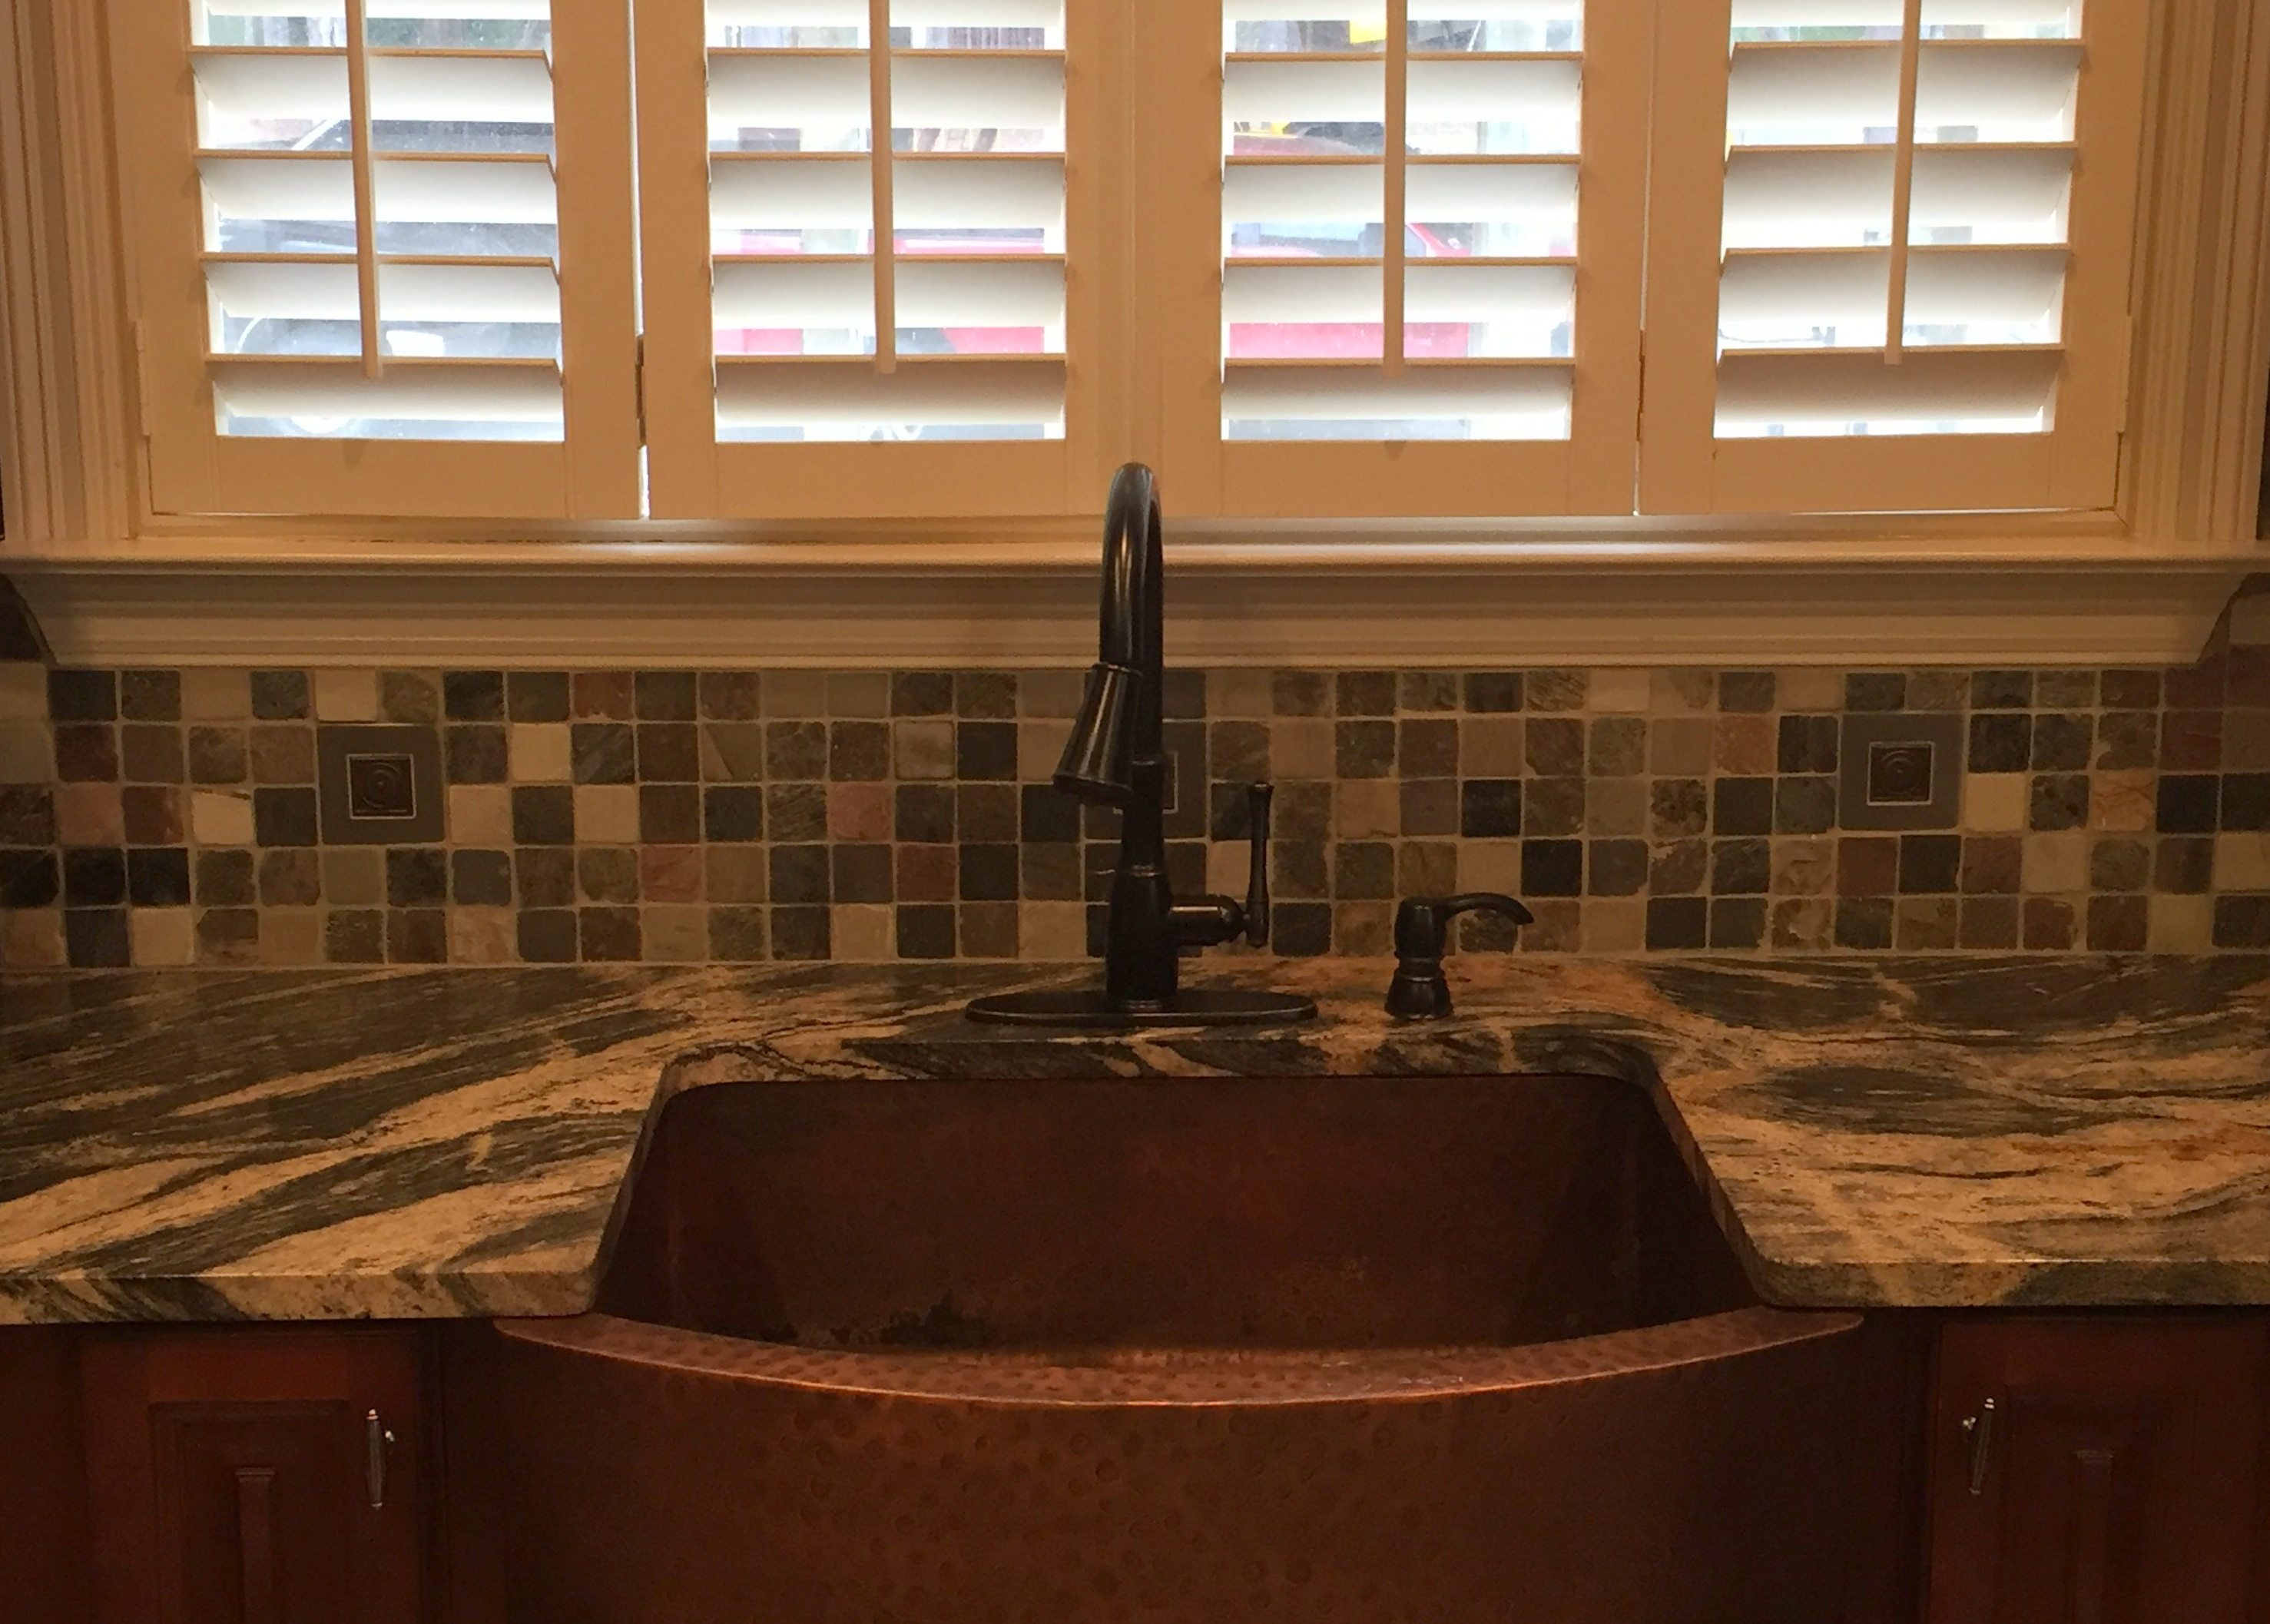 Copper Canyon Granite Countertops Quartz And Granite Surfacing Kitchen Countertops In Blue